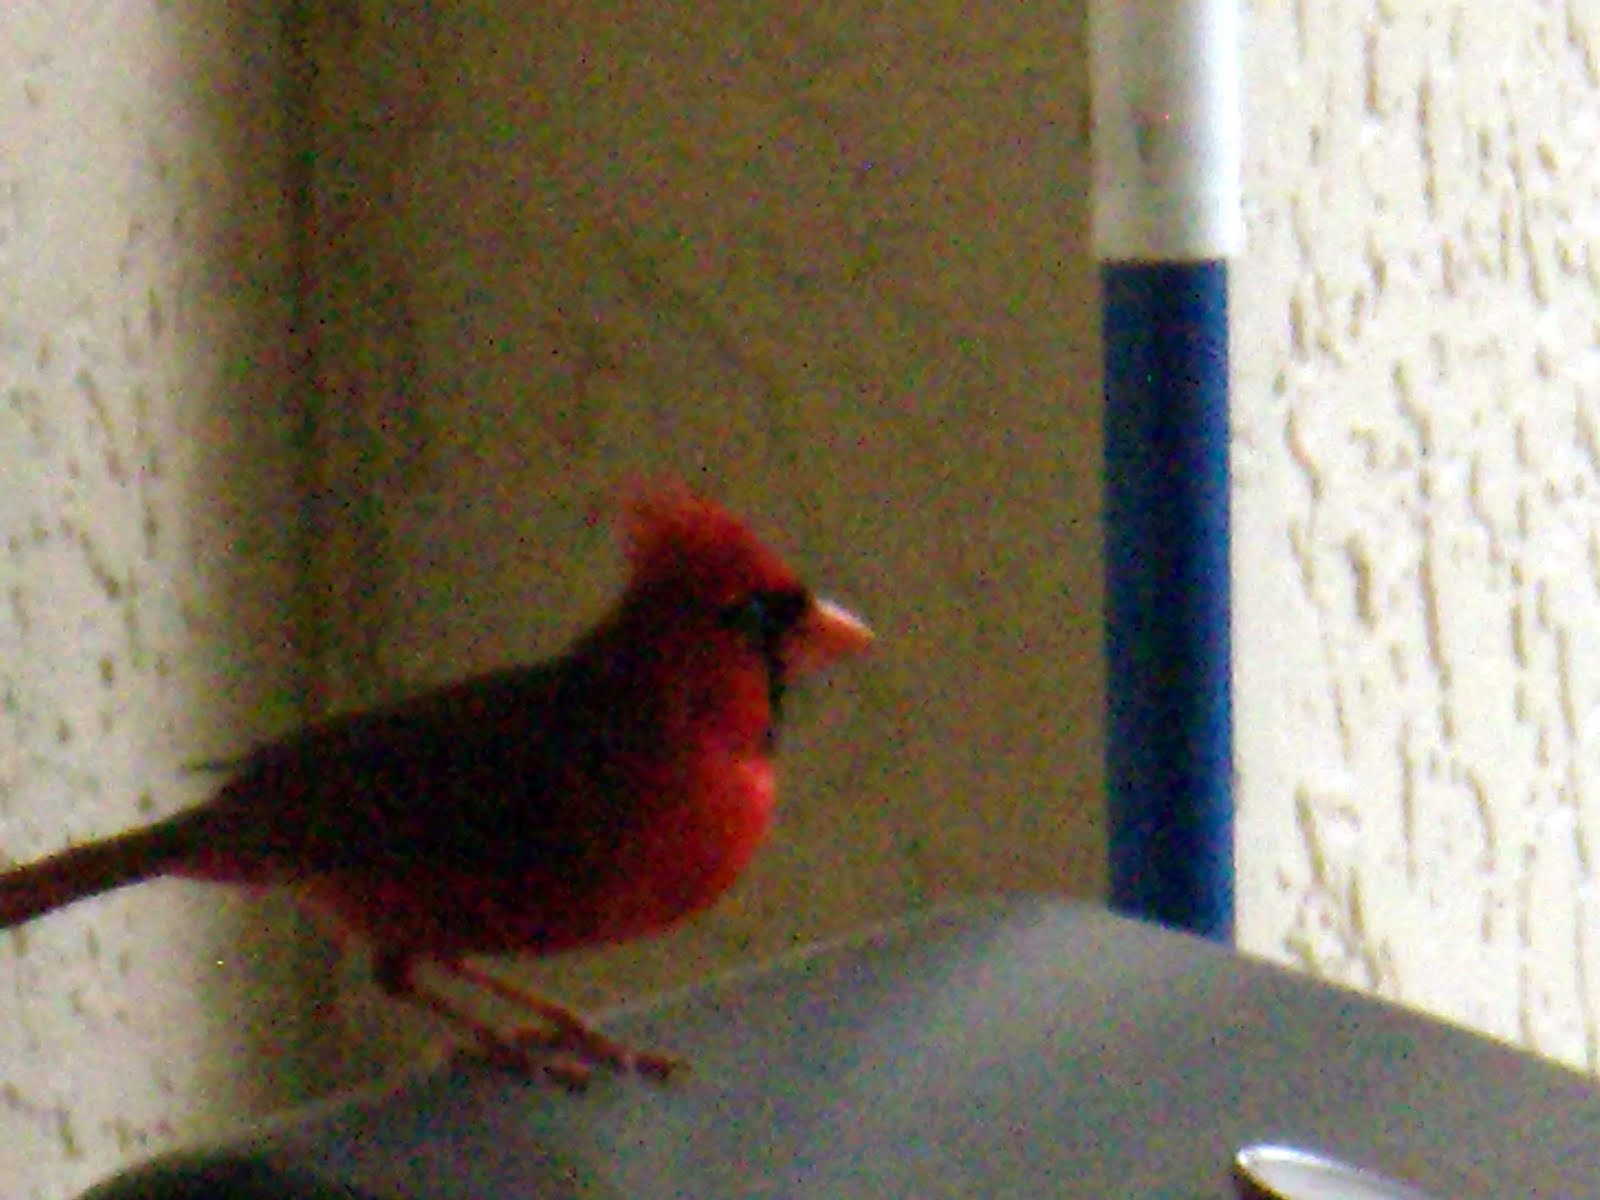 Symbolism of red bird images symbol and sign ideas dazzling alynn red jay bird i recently peeked at the symbolism of red jay bird and biocorpaavc